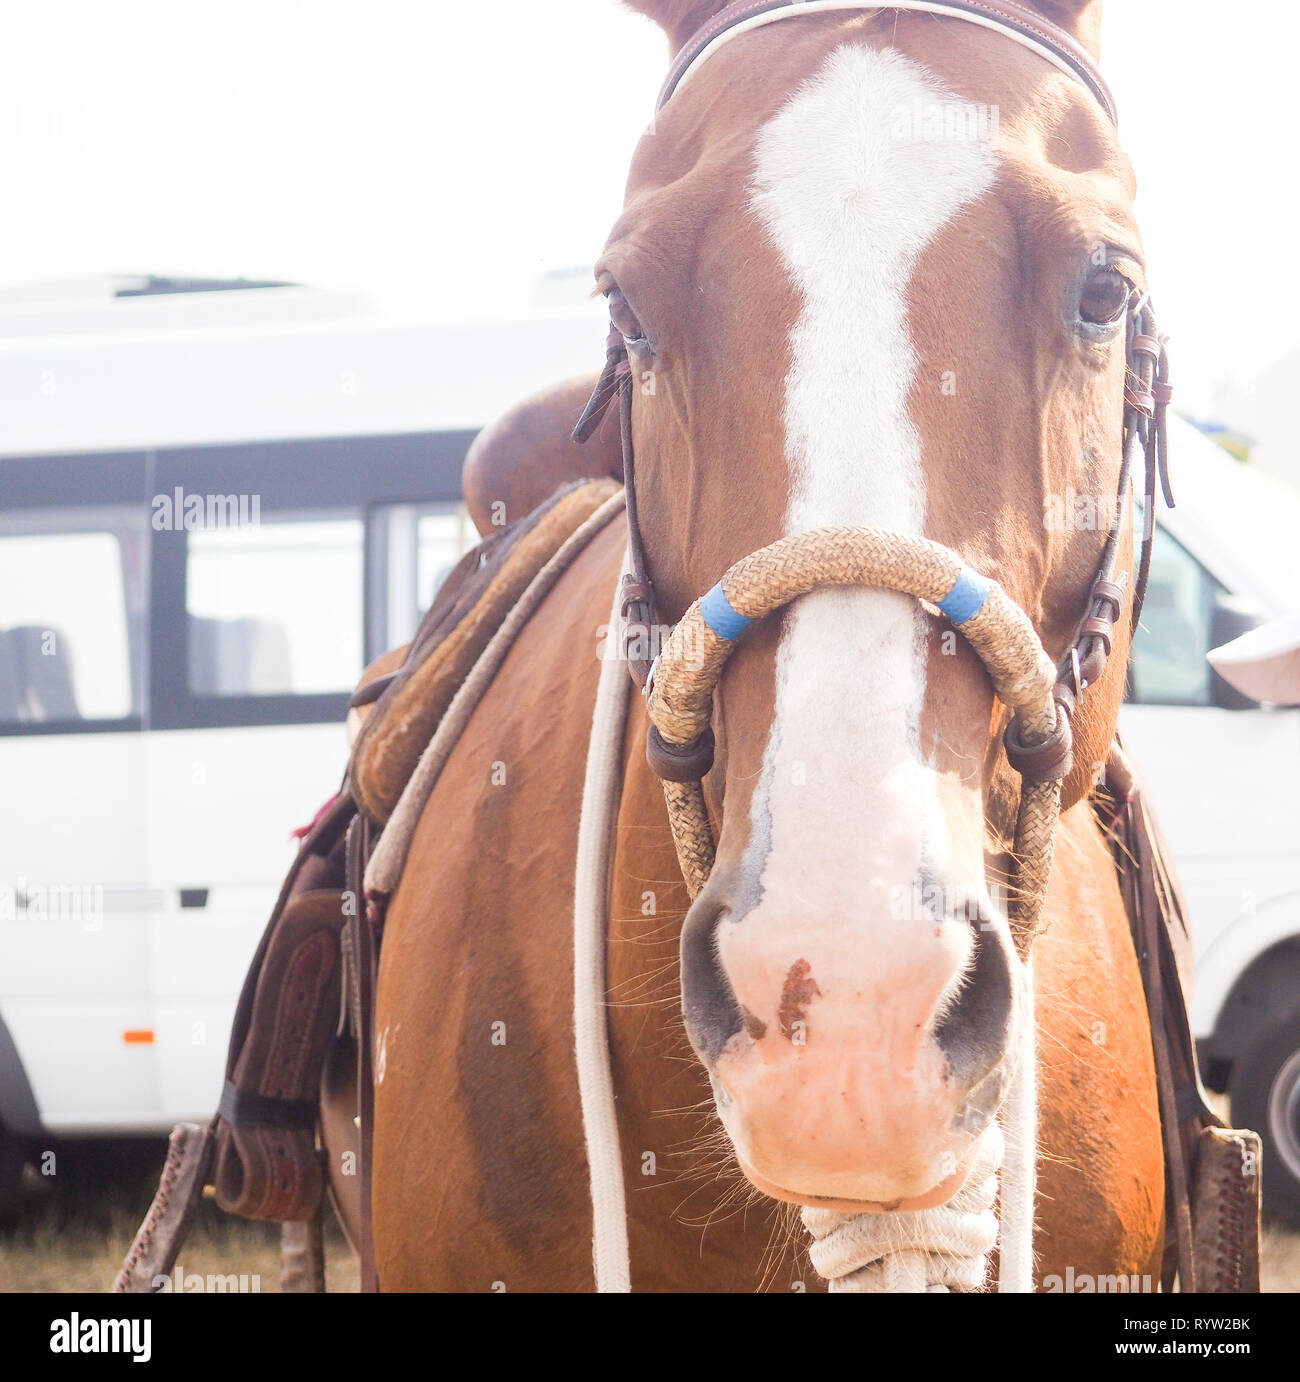 Brown Horse Head With Reins Close Up View Of Beautiful Horse Face Standing Outdoor In Farm And Looking To Camera Stock Photo Alamy